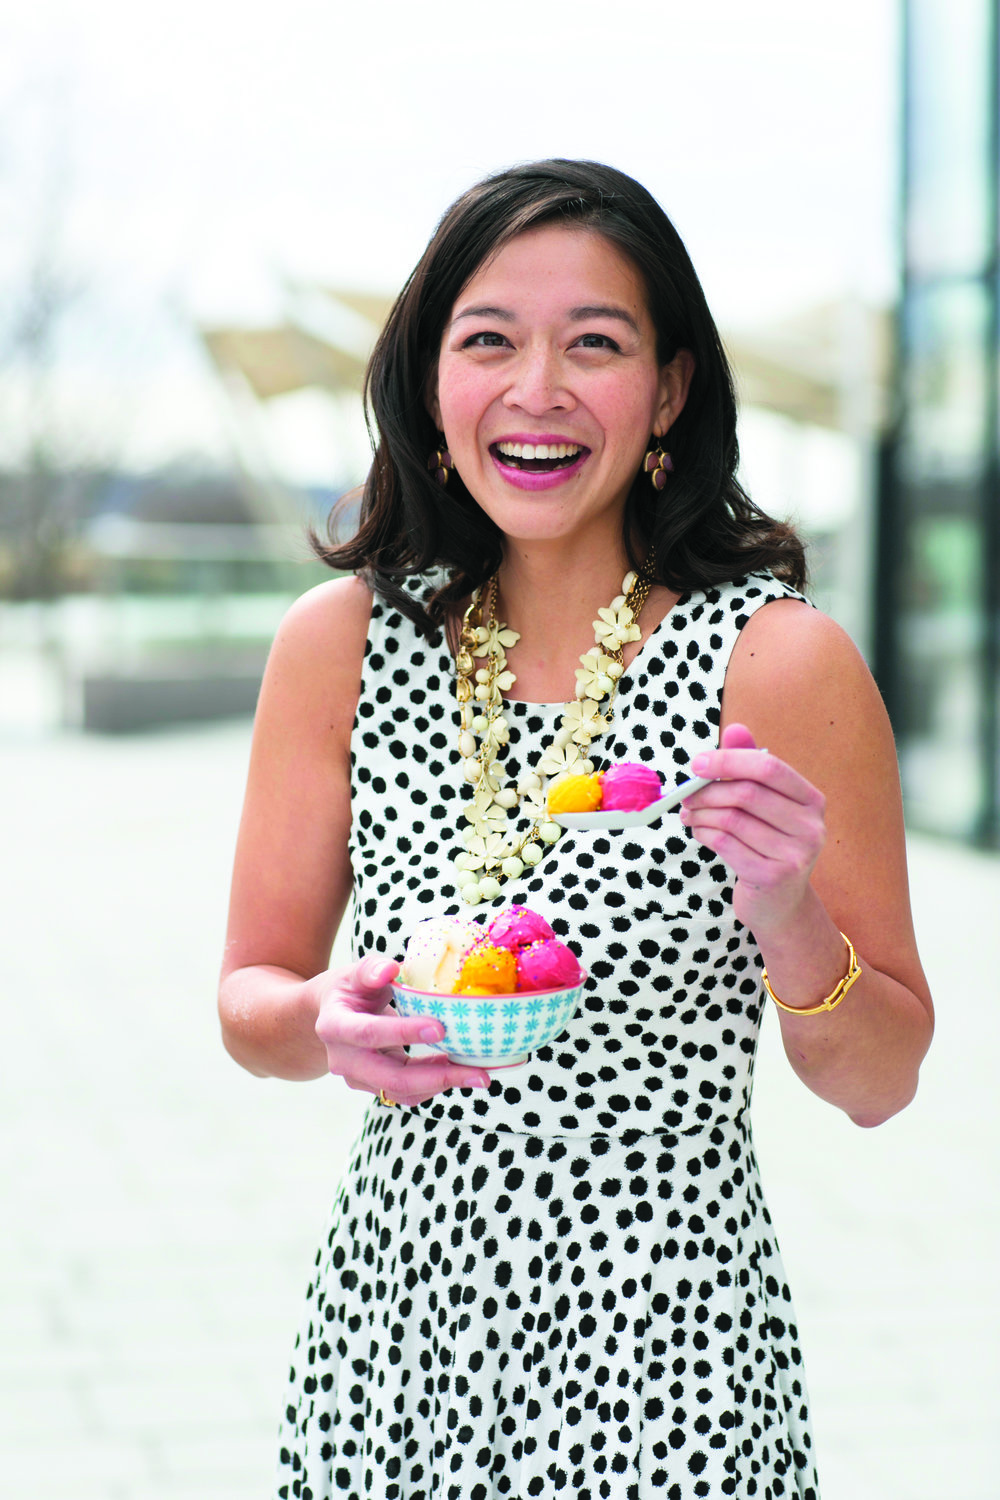 Victoria Lai, founder, Ice cream jubilee